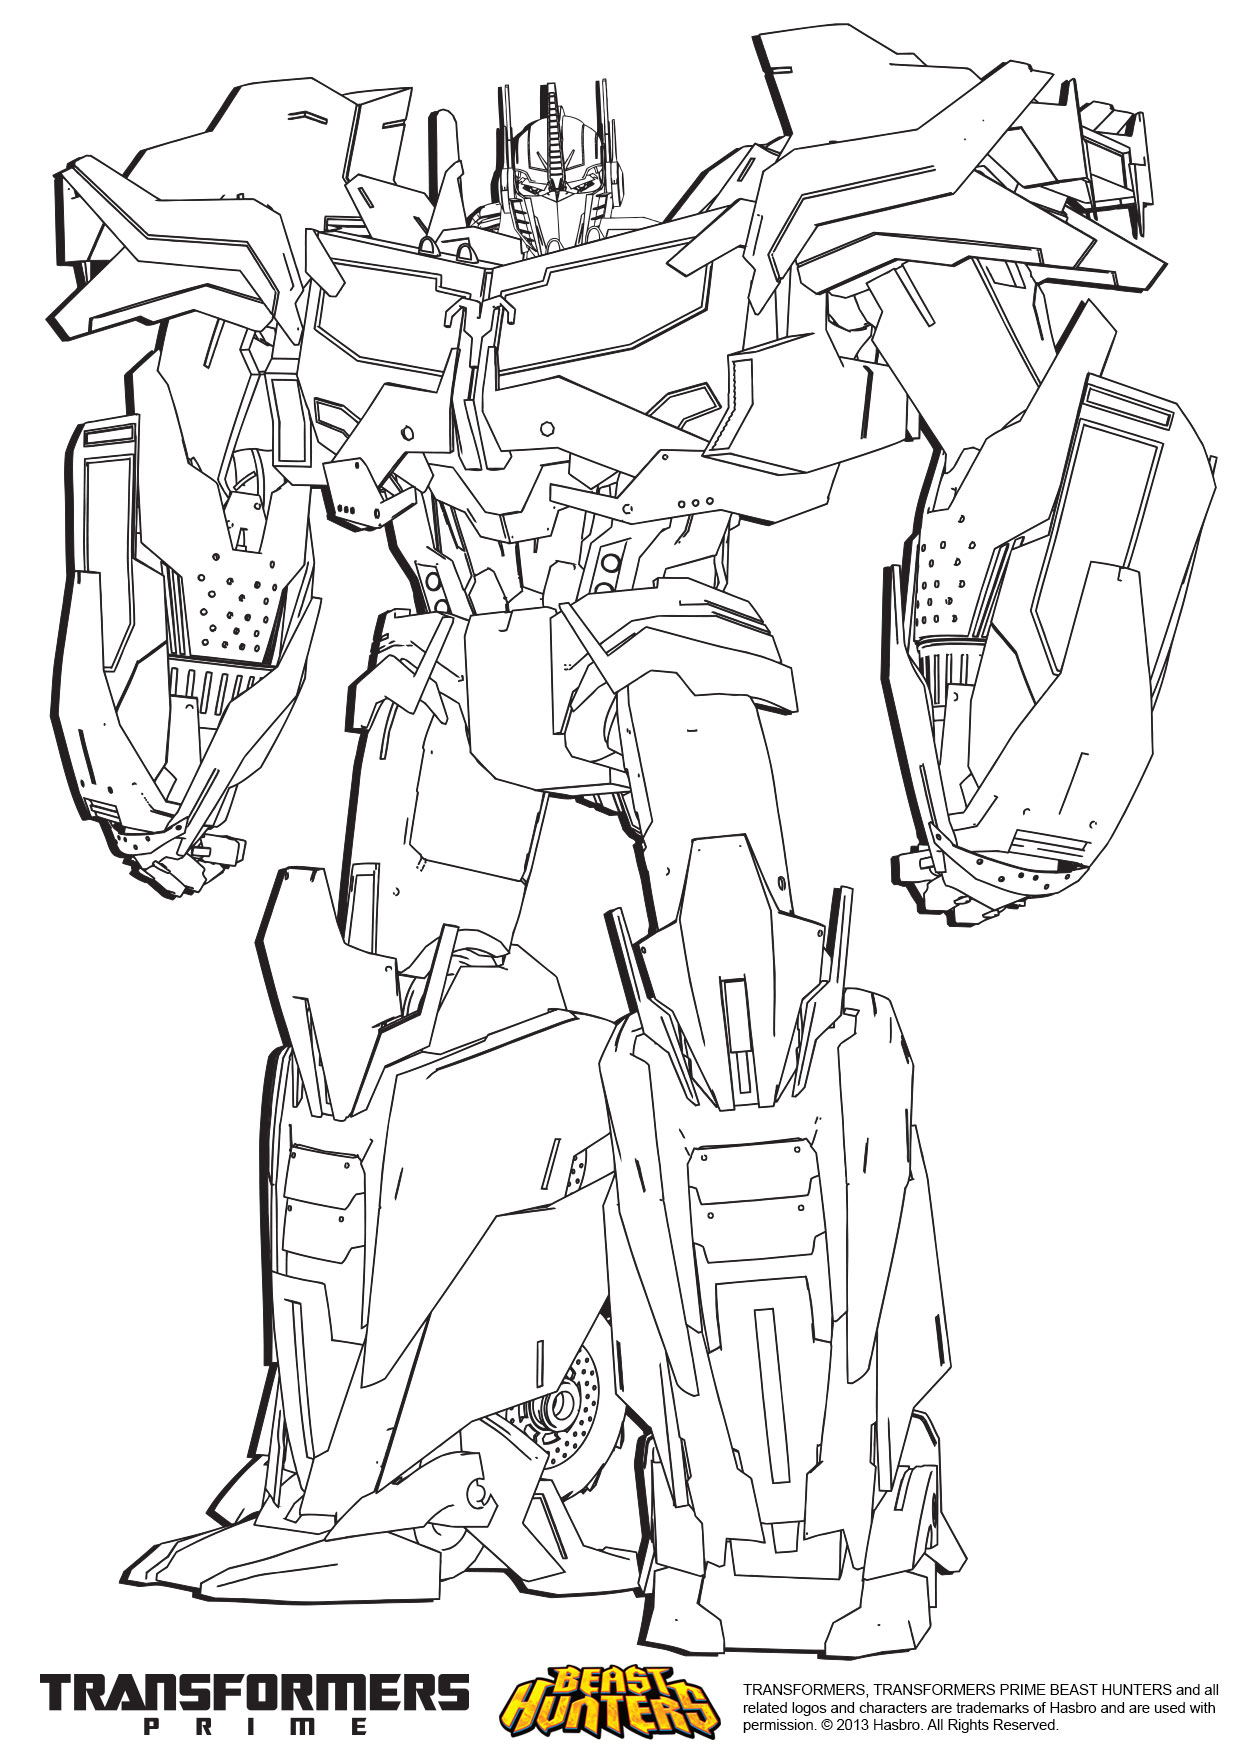 transformer prime beast hunters optimus prime drawing